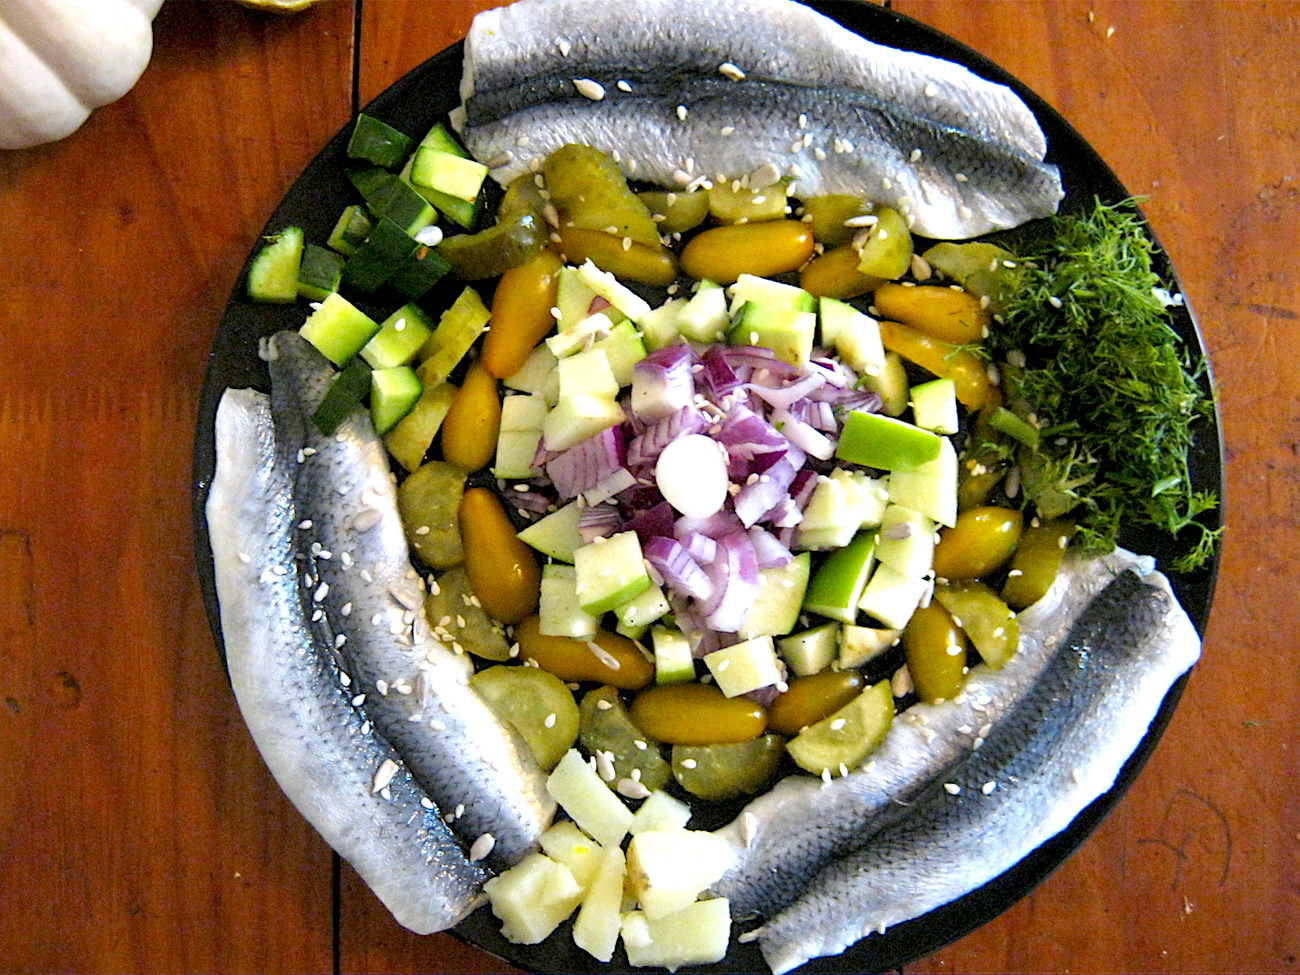 Pickled Bismarck Herring Salad with gherkins, capers, cucumbers, red onions, potatoes, apple juice and herbs. Follow our easy to follow step by step instructions and enjoy.